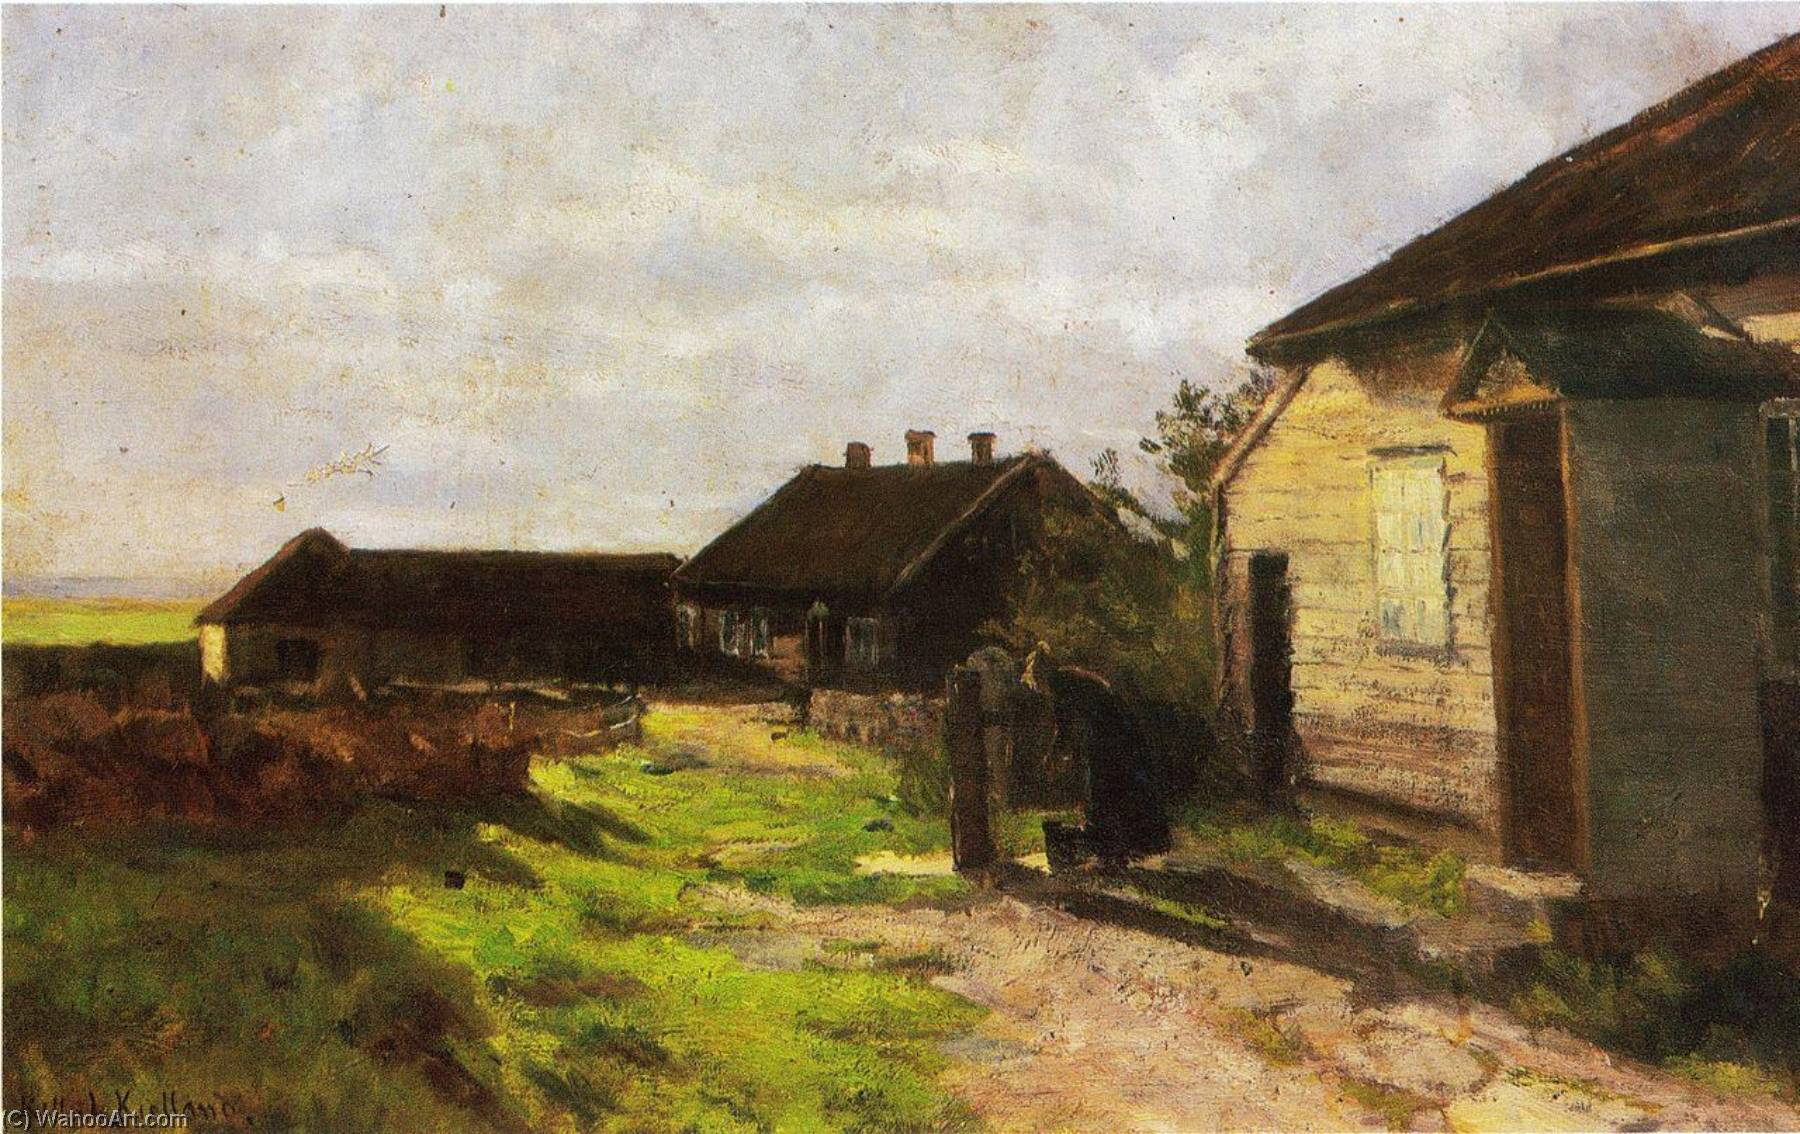 Усадьба в квалбейне, 1904 по Kitty Kielland